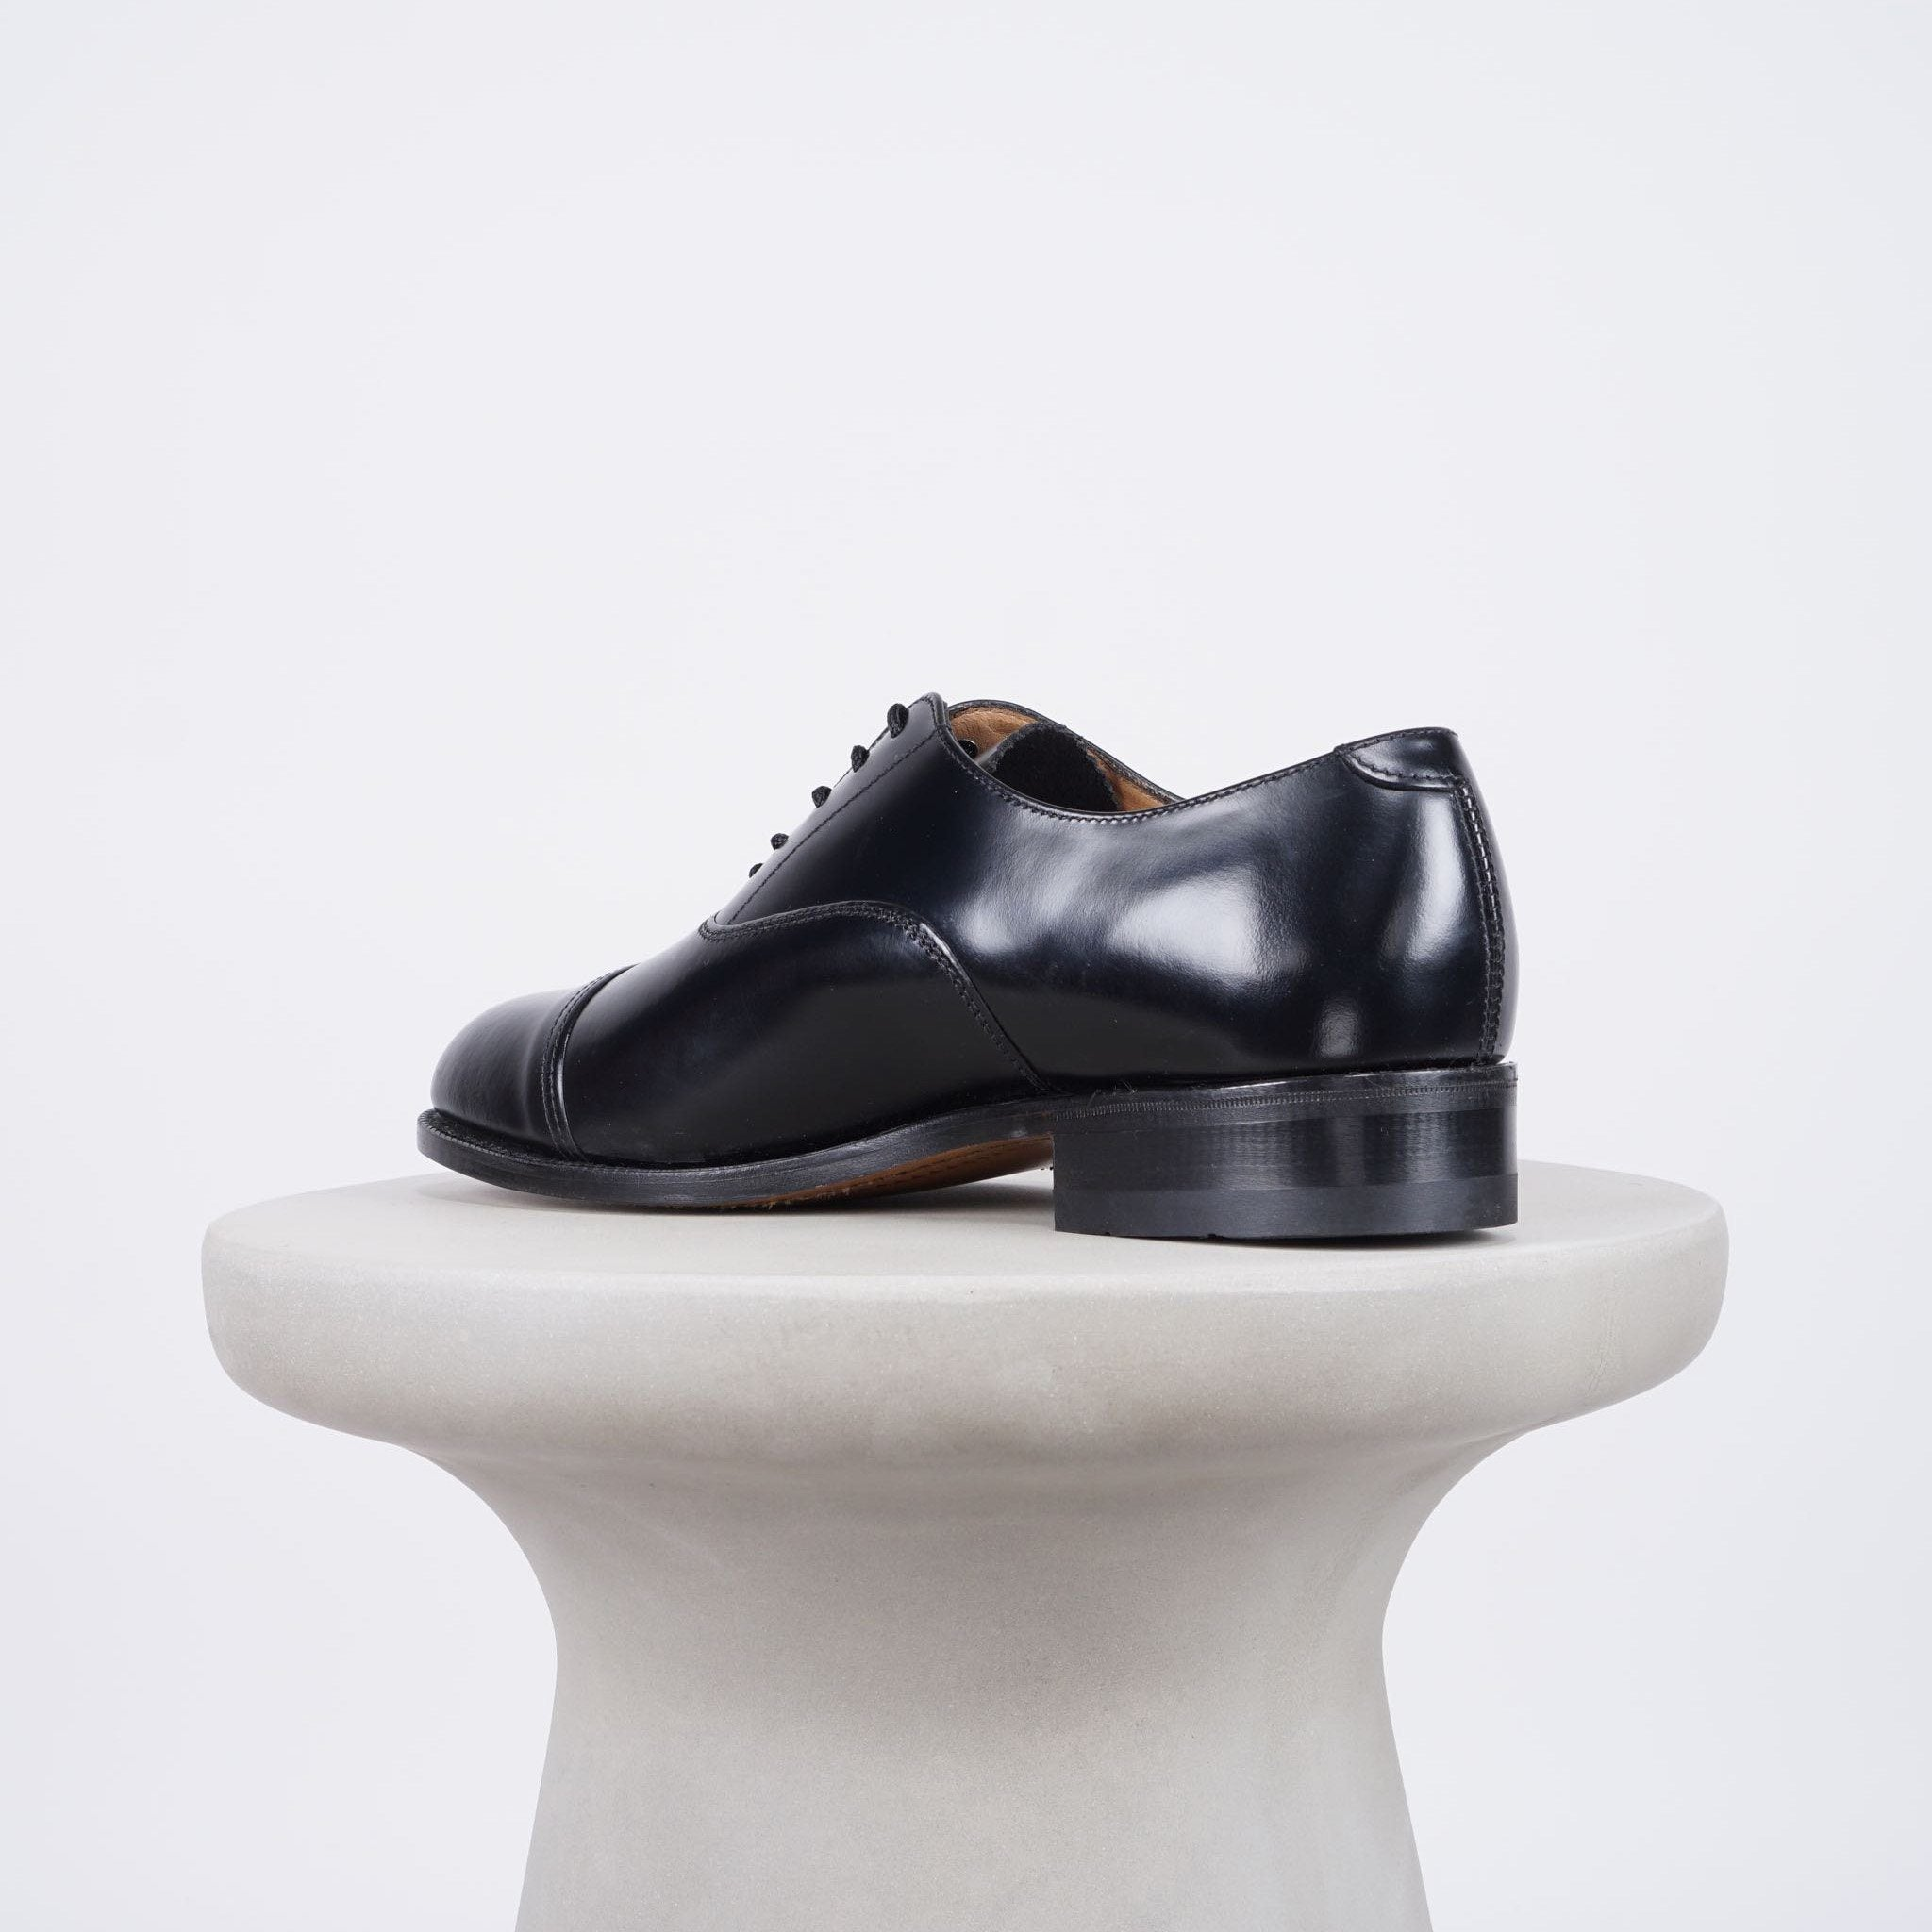 Sanders Oxford shoes - Black